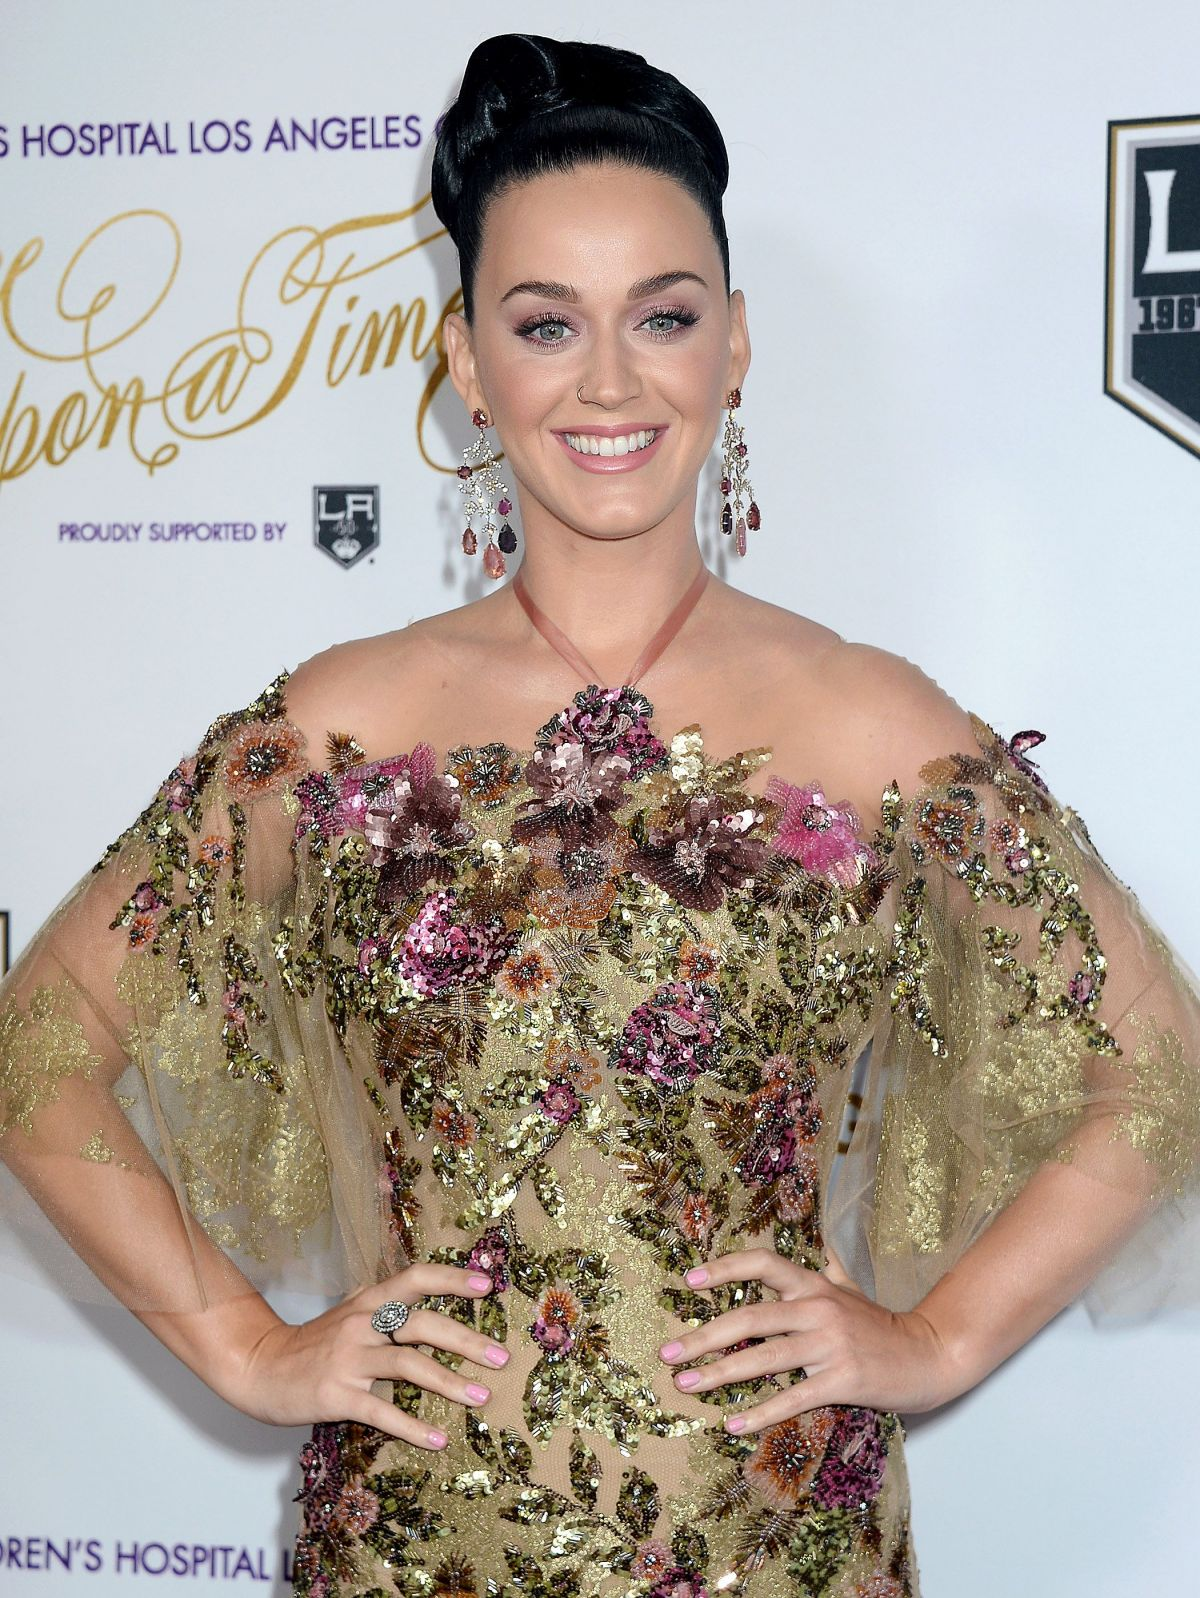 KATY PERRY at 2016 Children's Hospital Los Angeles Once Upon a Time on